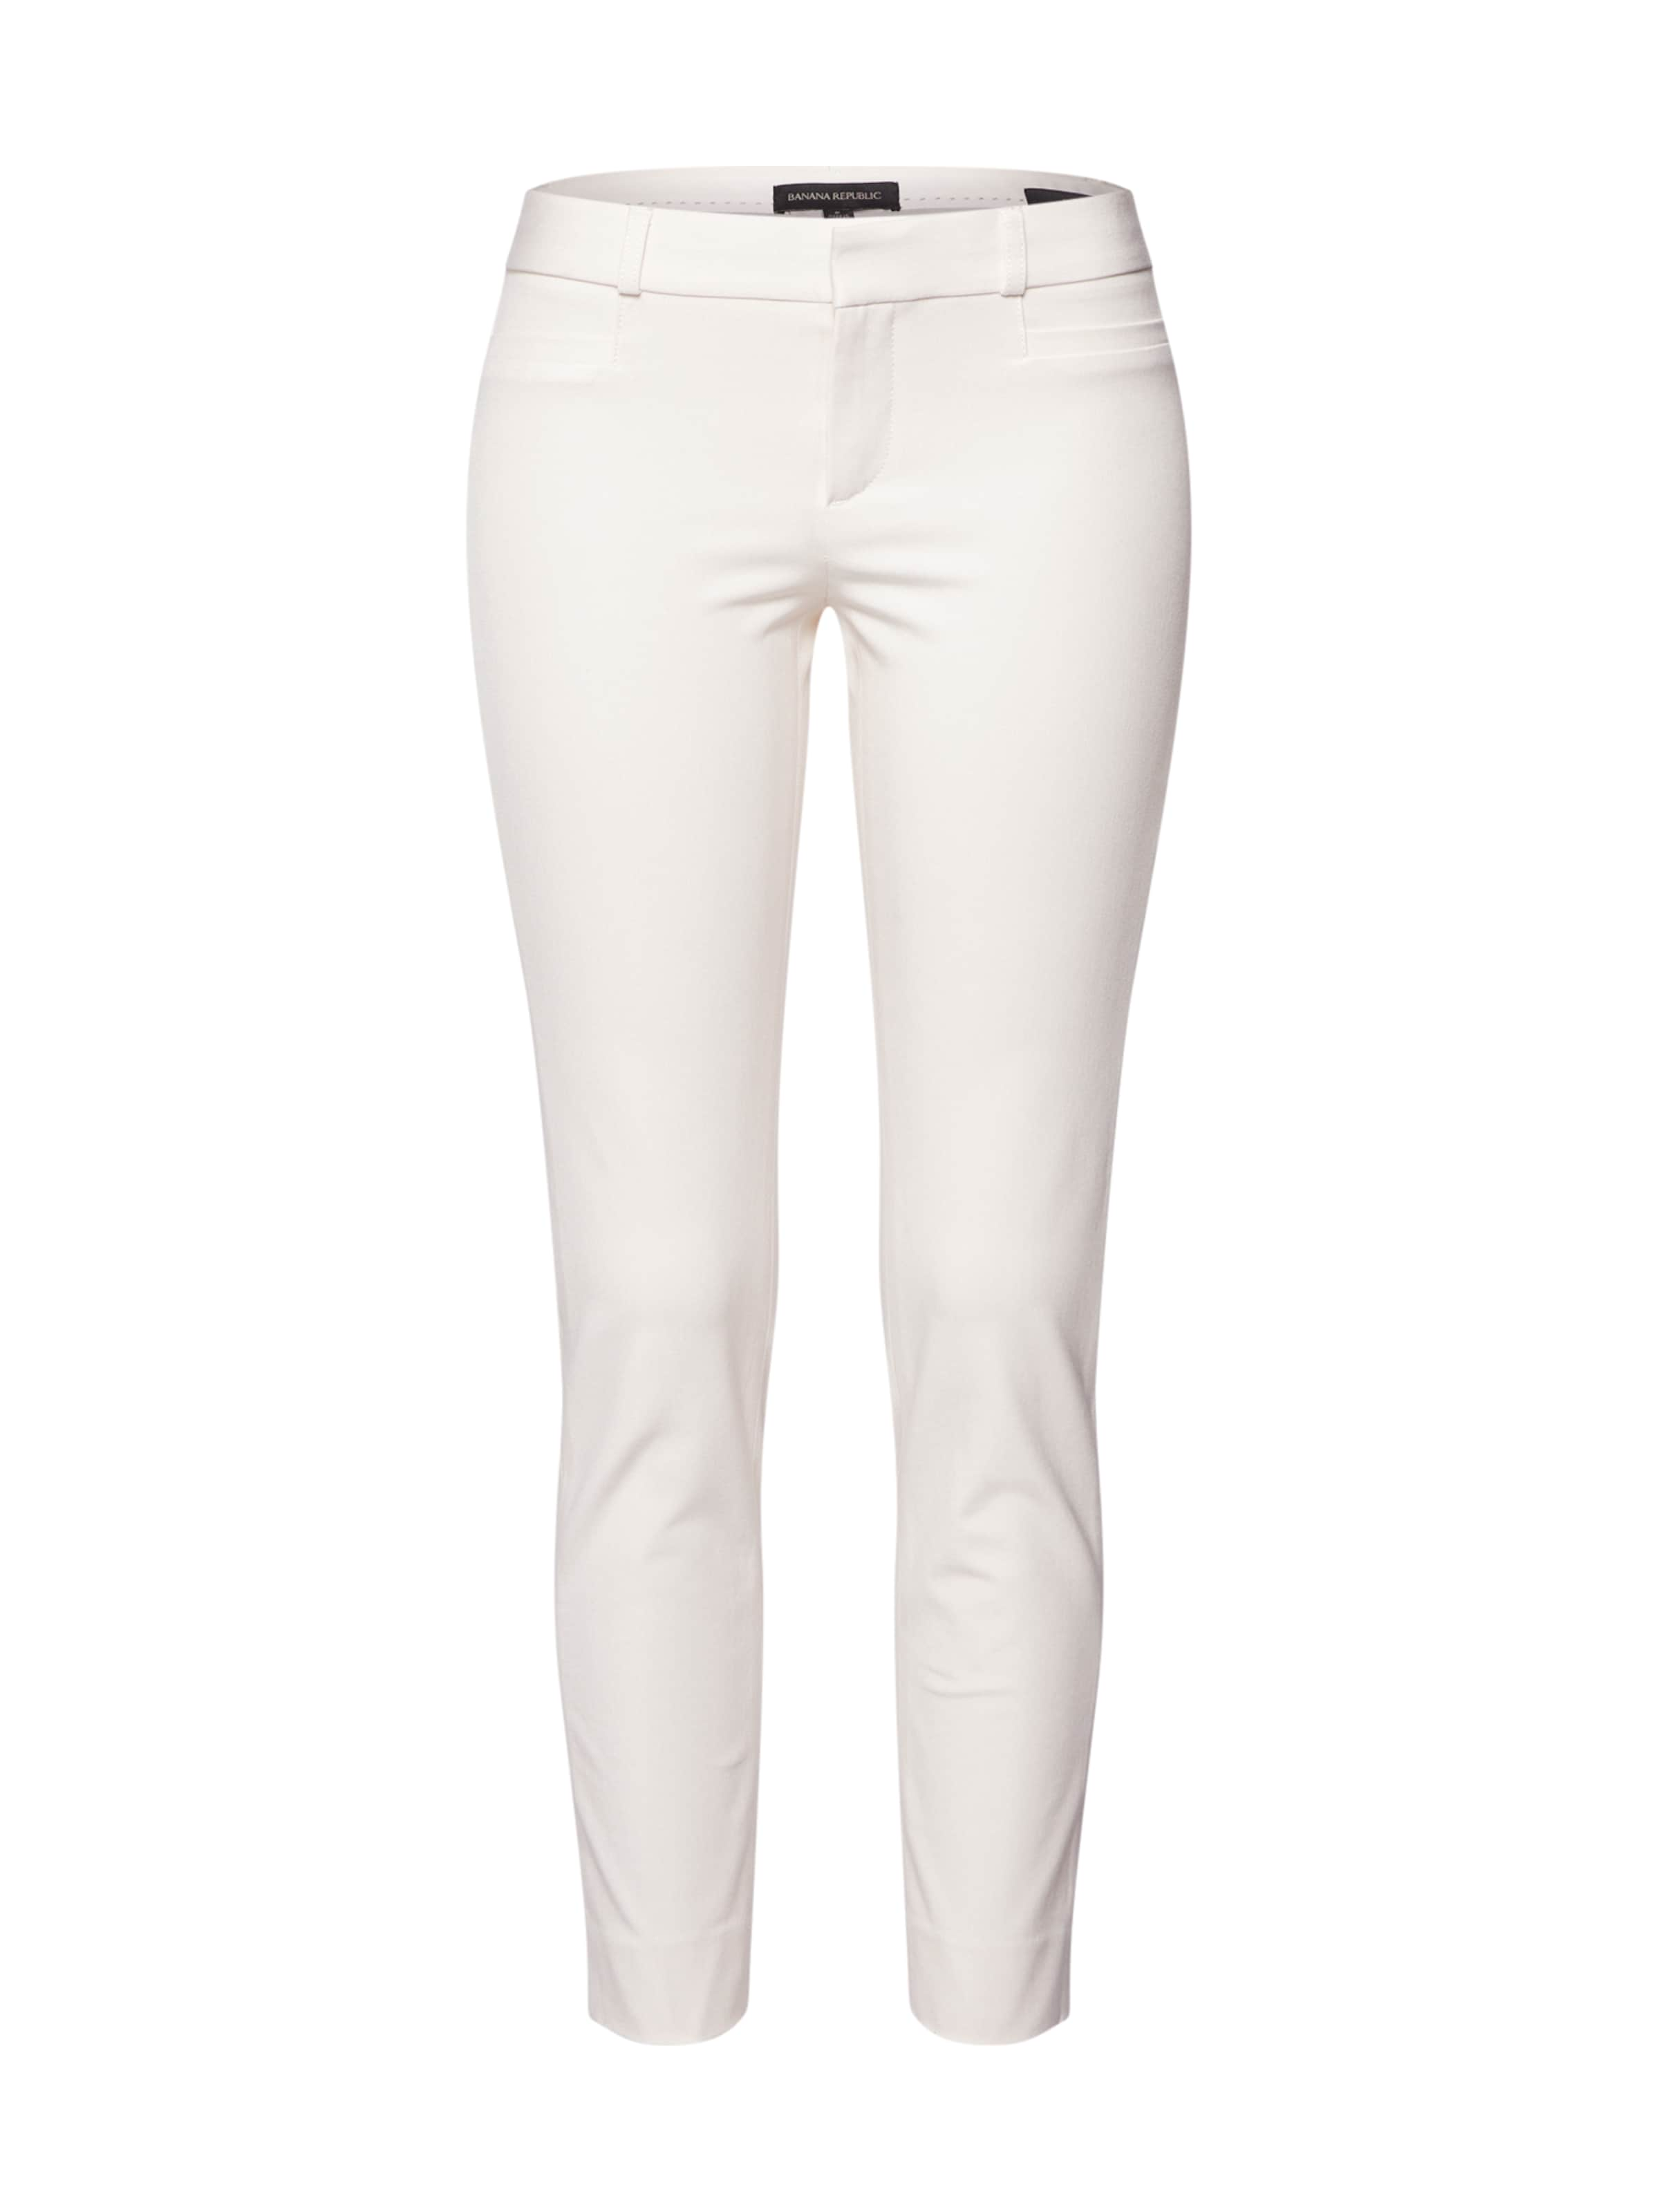 Cream Solid Jeans Creme Republic Banana Pant' In 'sloan A435jLR